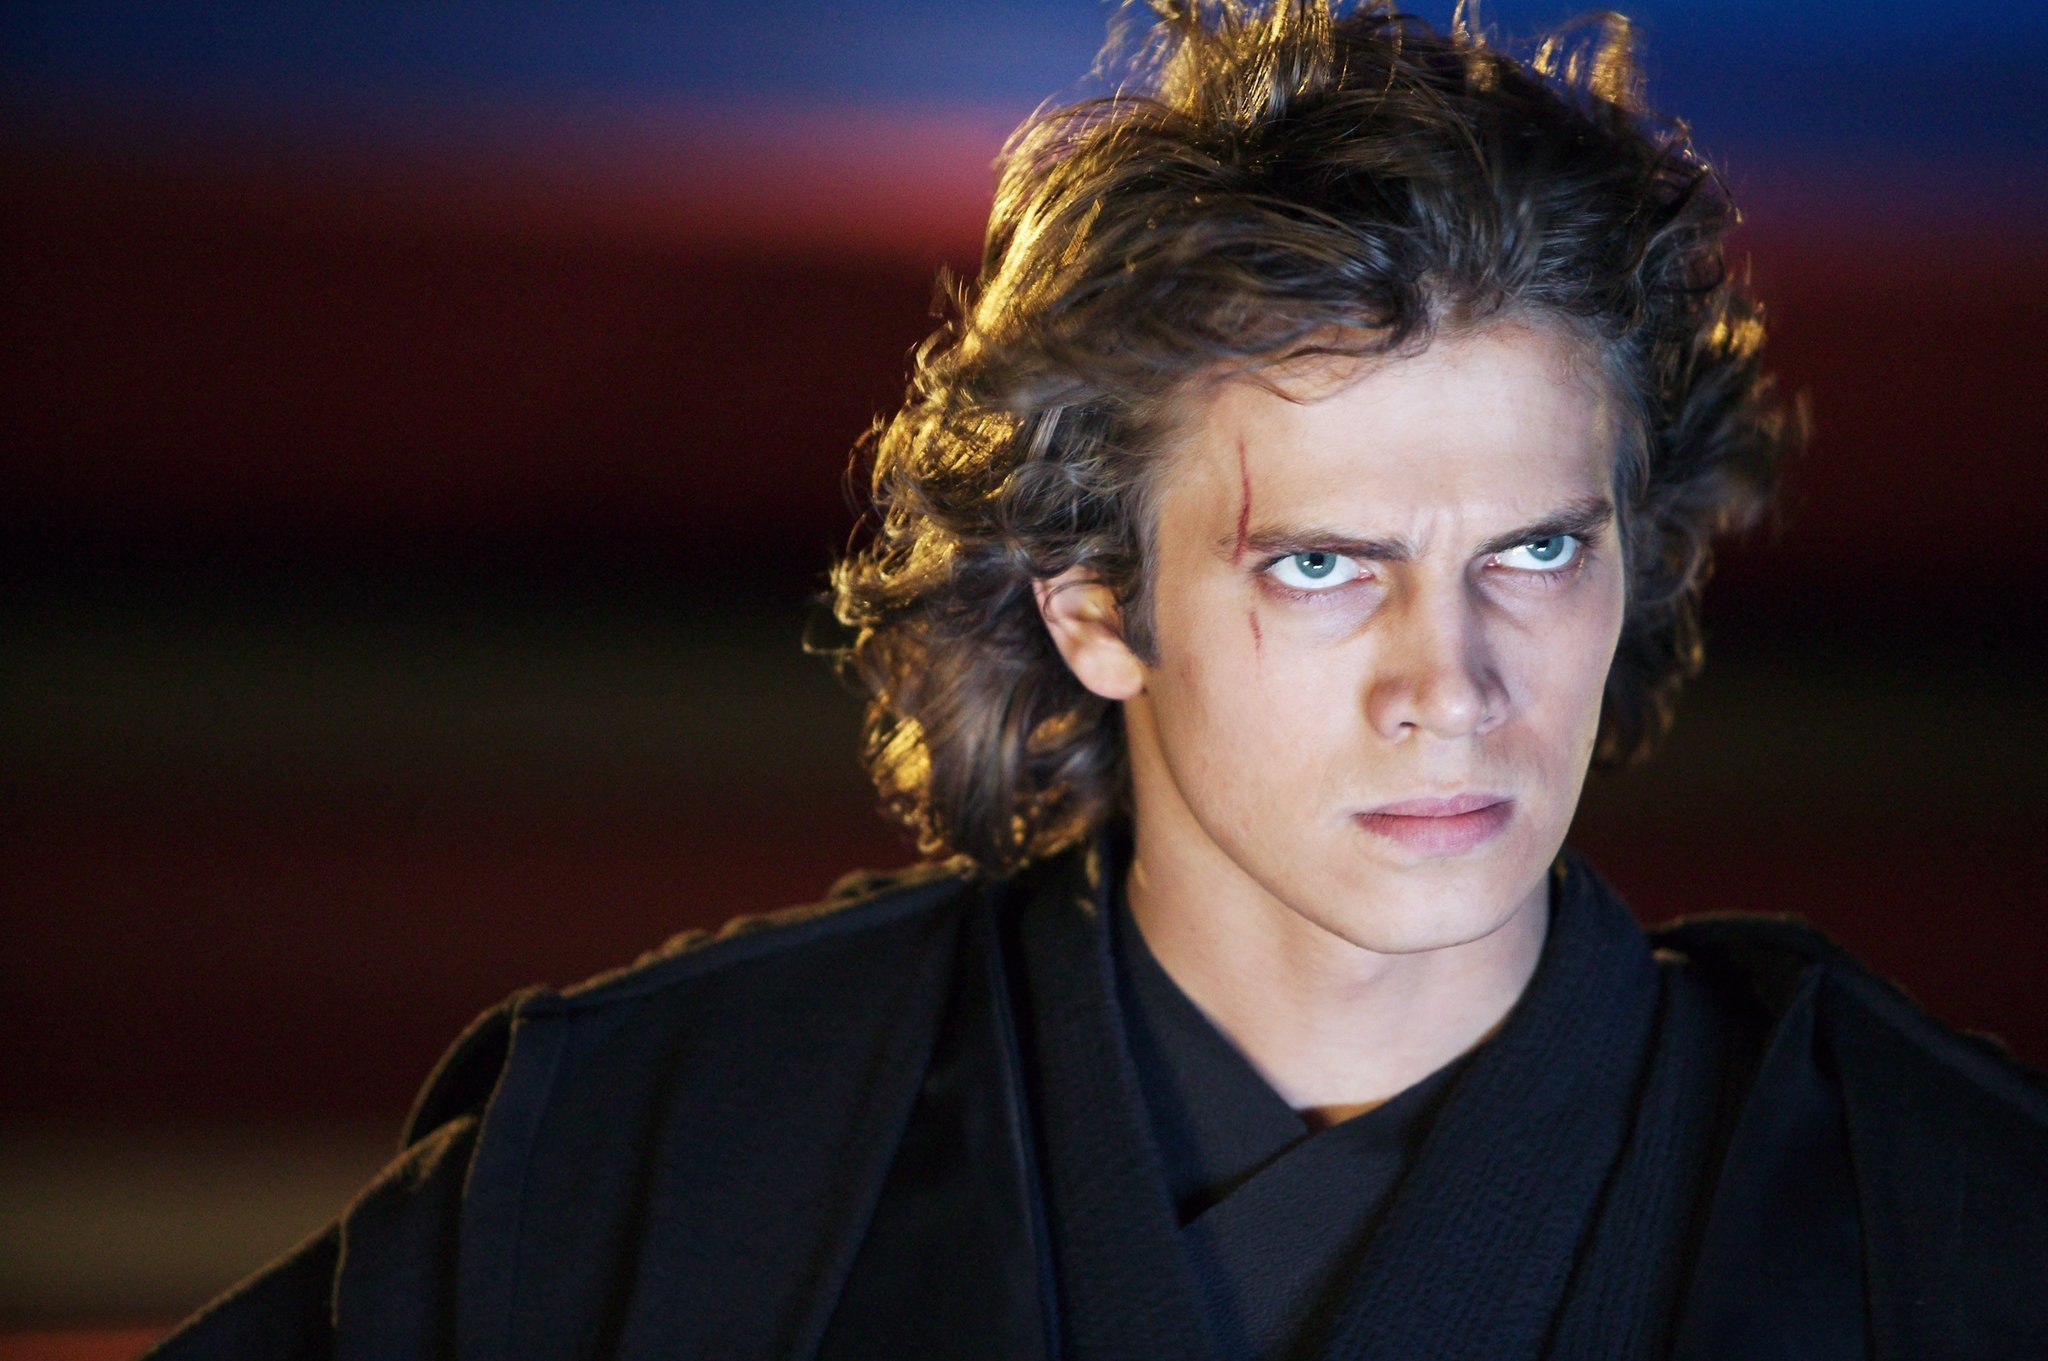 Watch Hayden Christensen video